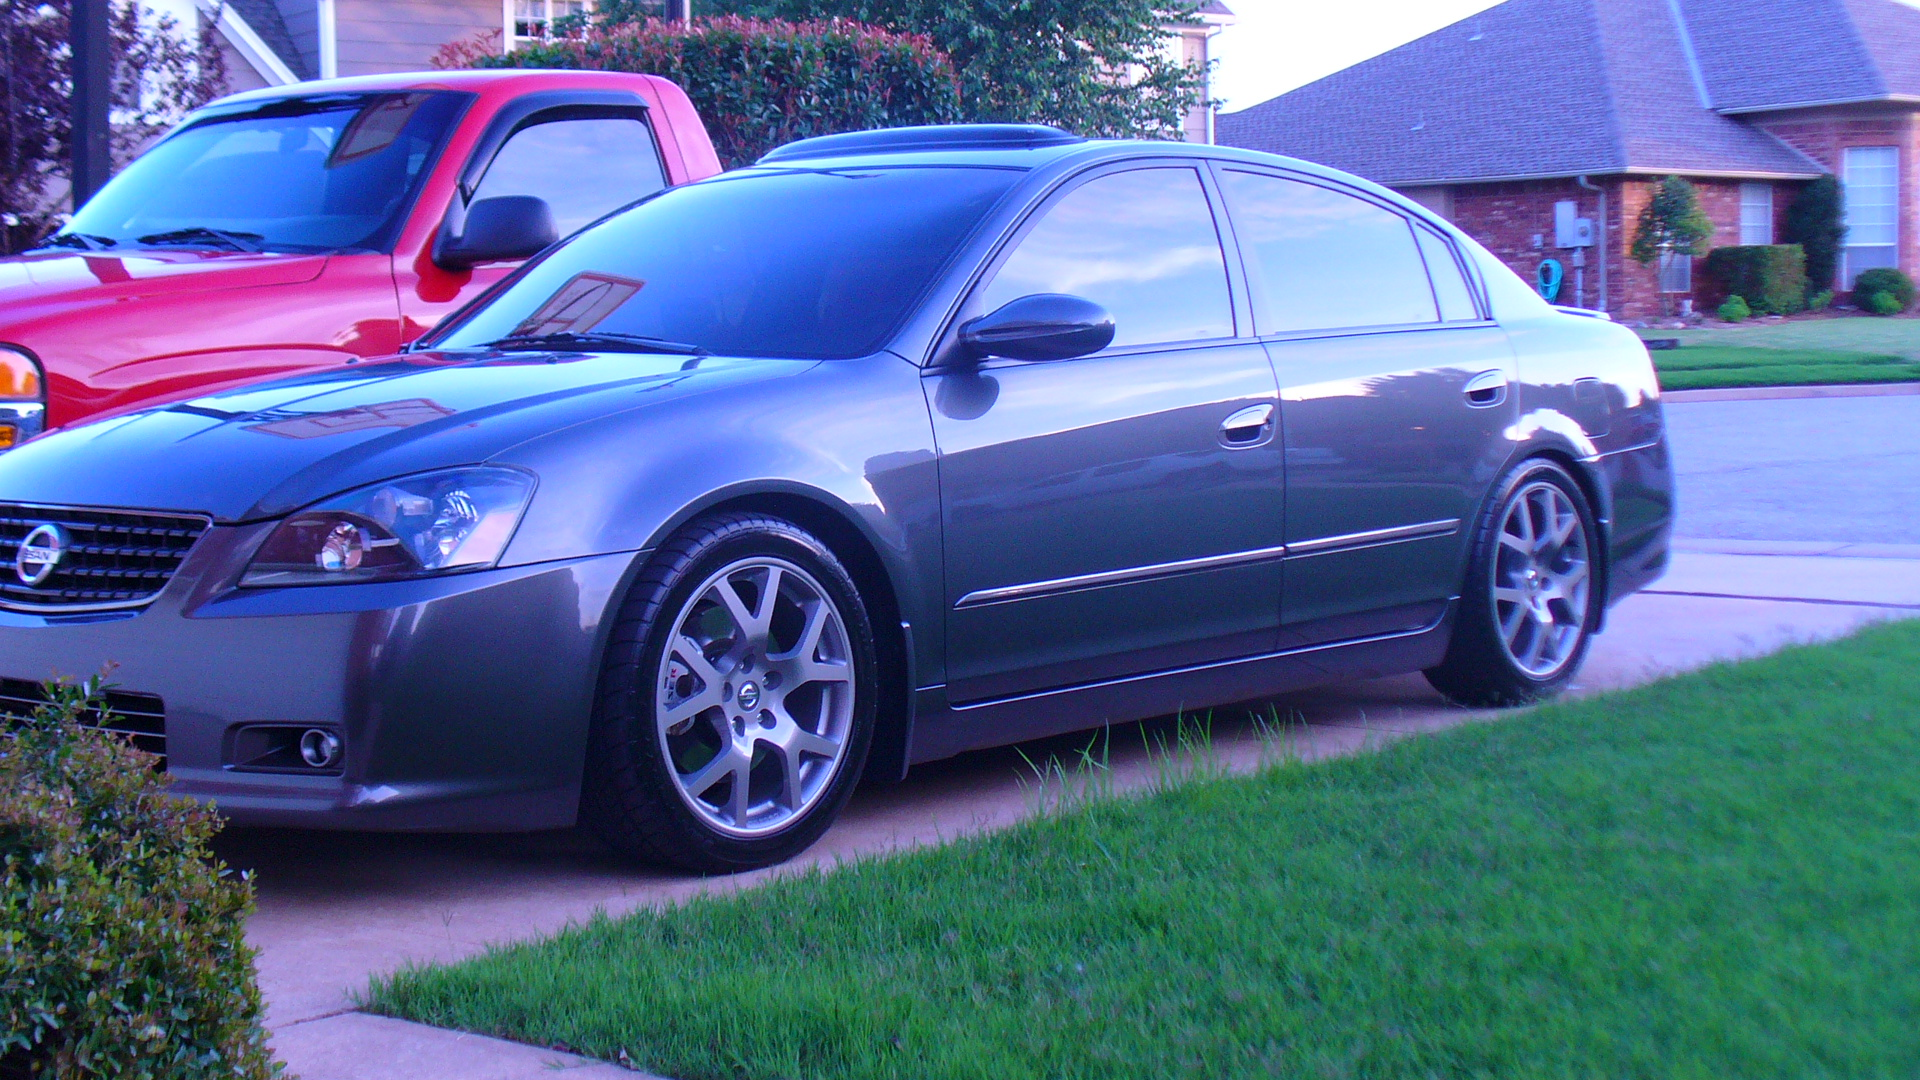 2006 Nissan Altima SE-R 1/4 mile Drag Racing timeslip ...